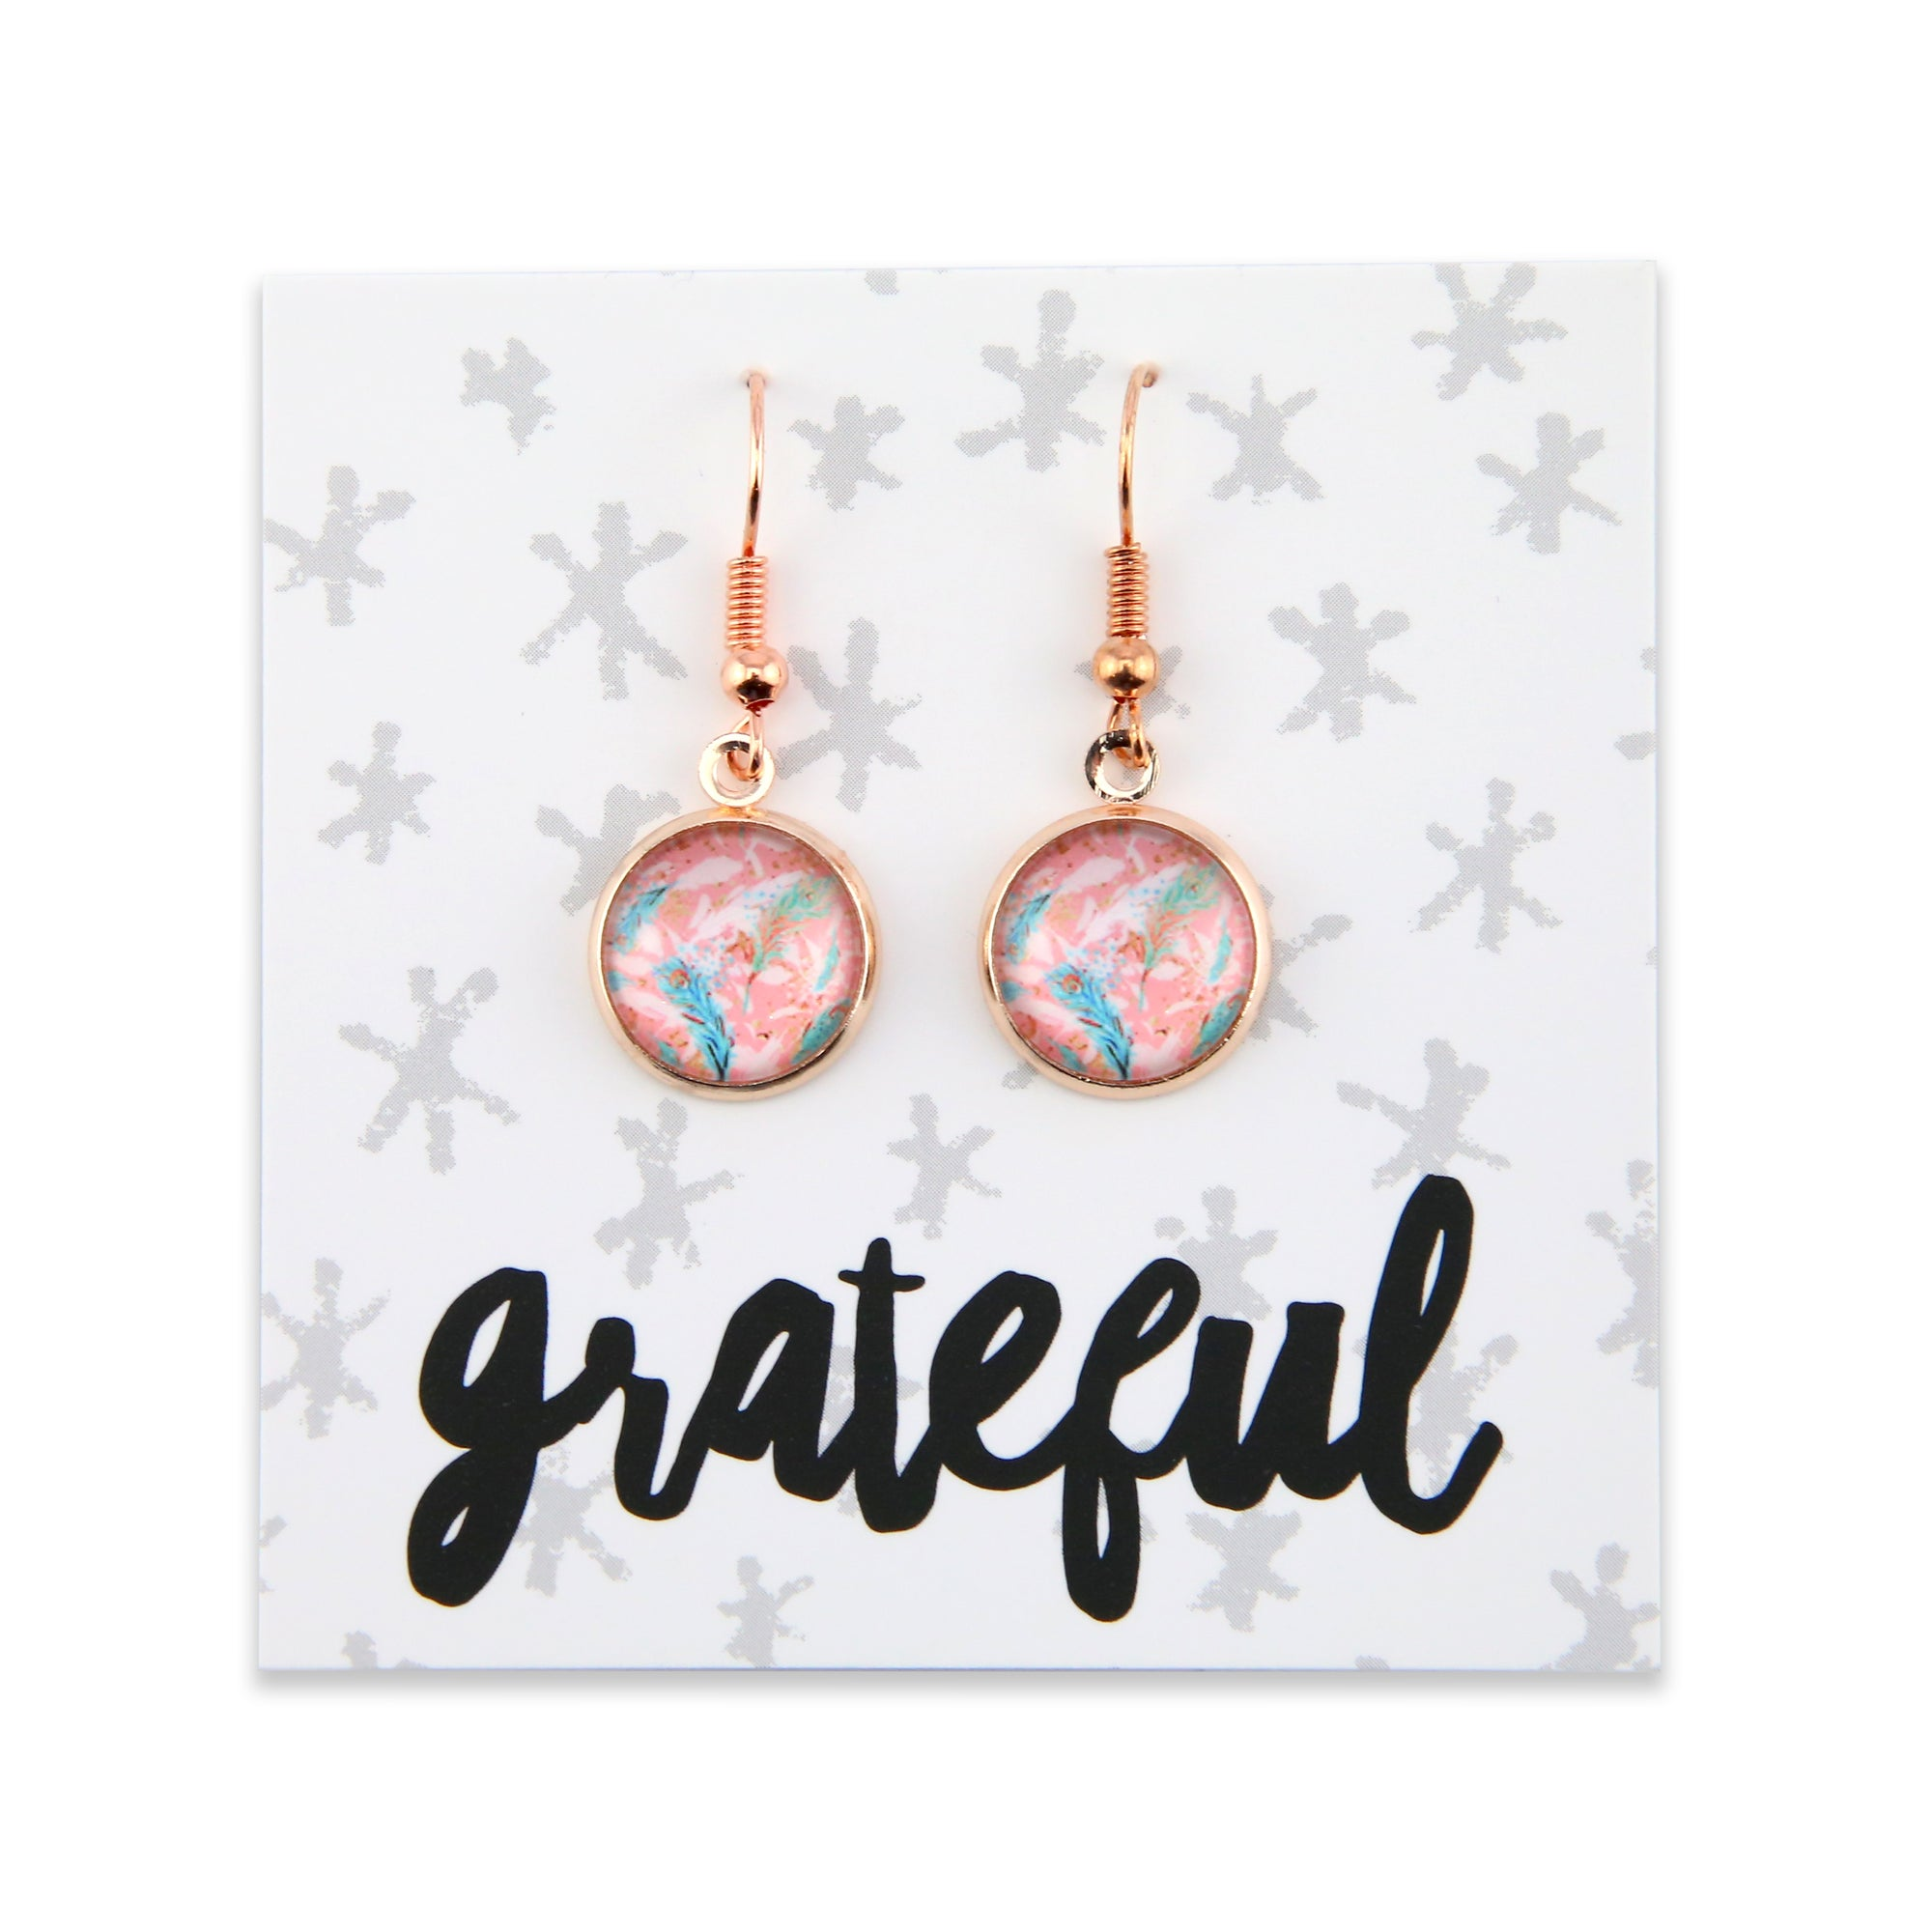 BOHO Collection - GRATEFUL - Stainless Steel Rose Gold Dangle Earrings - Soft Feathers (8075)